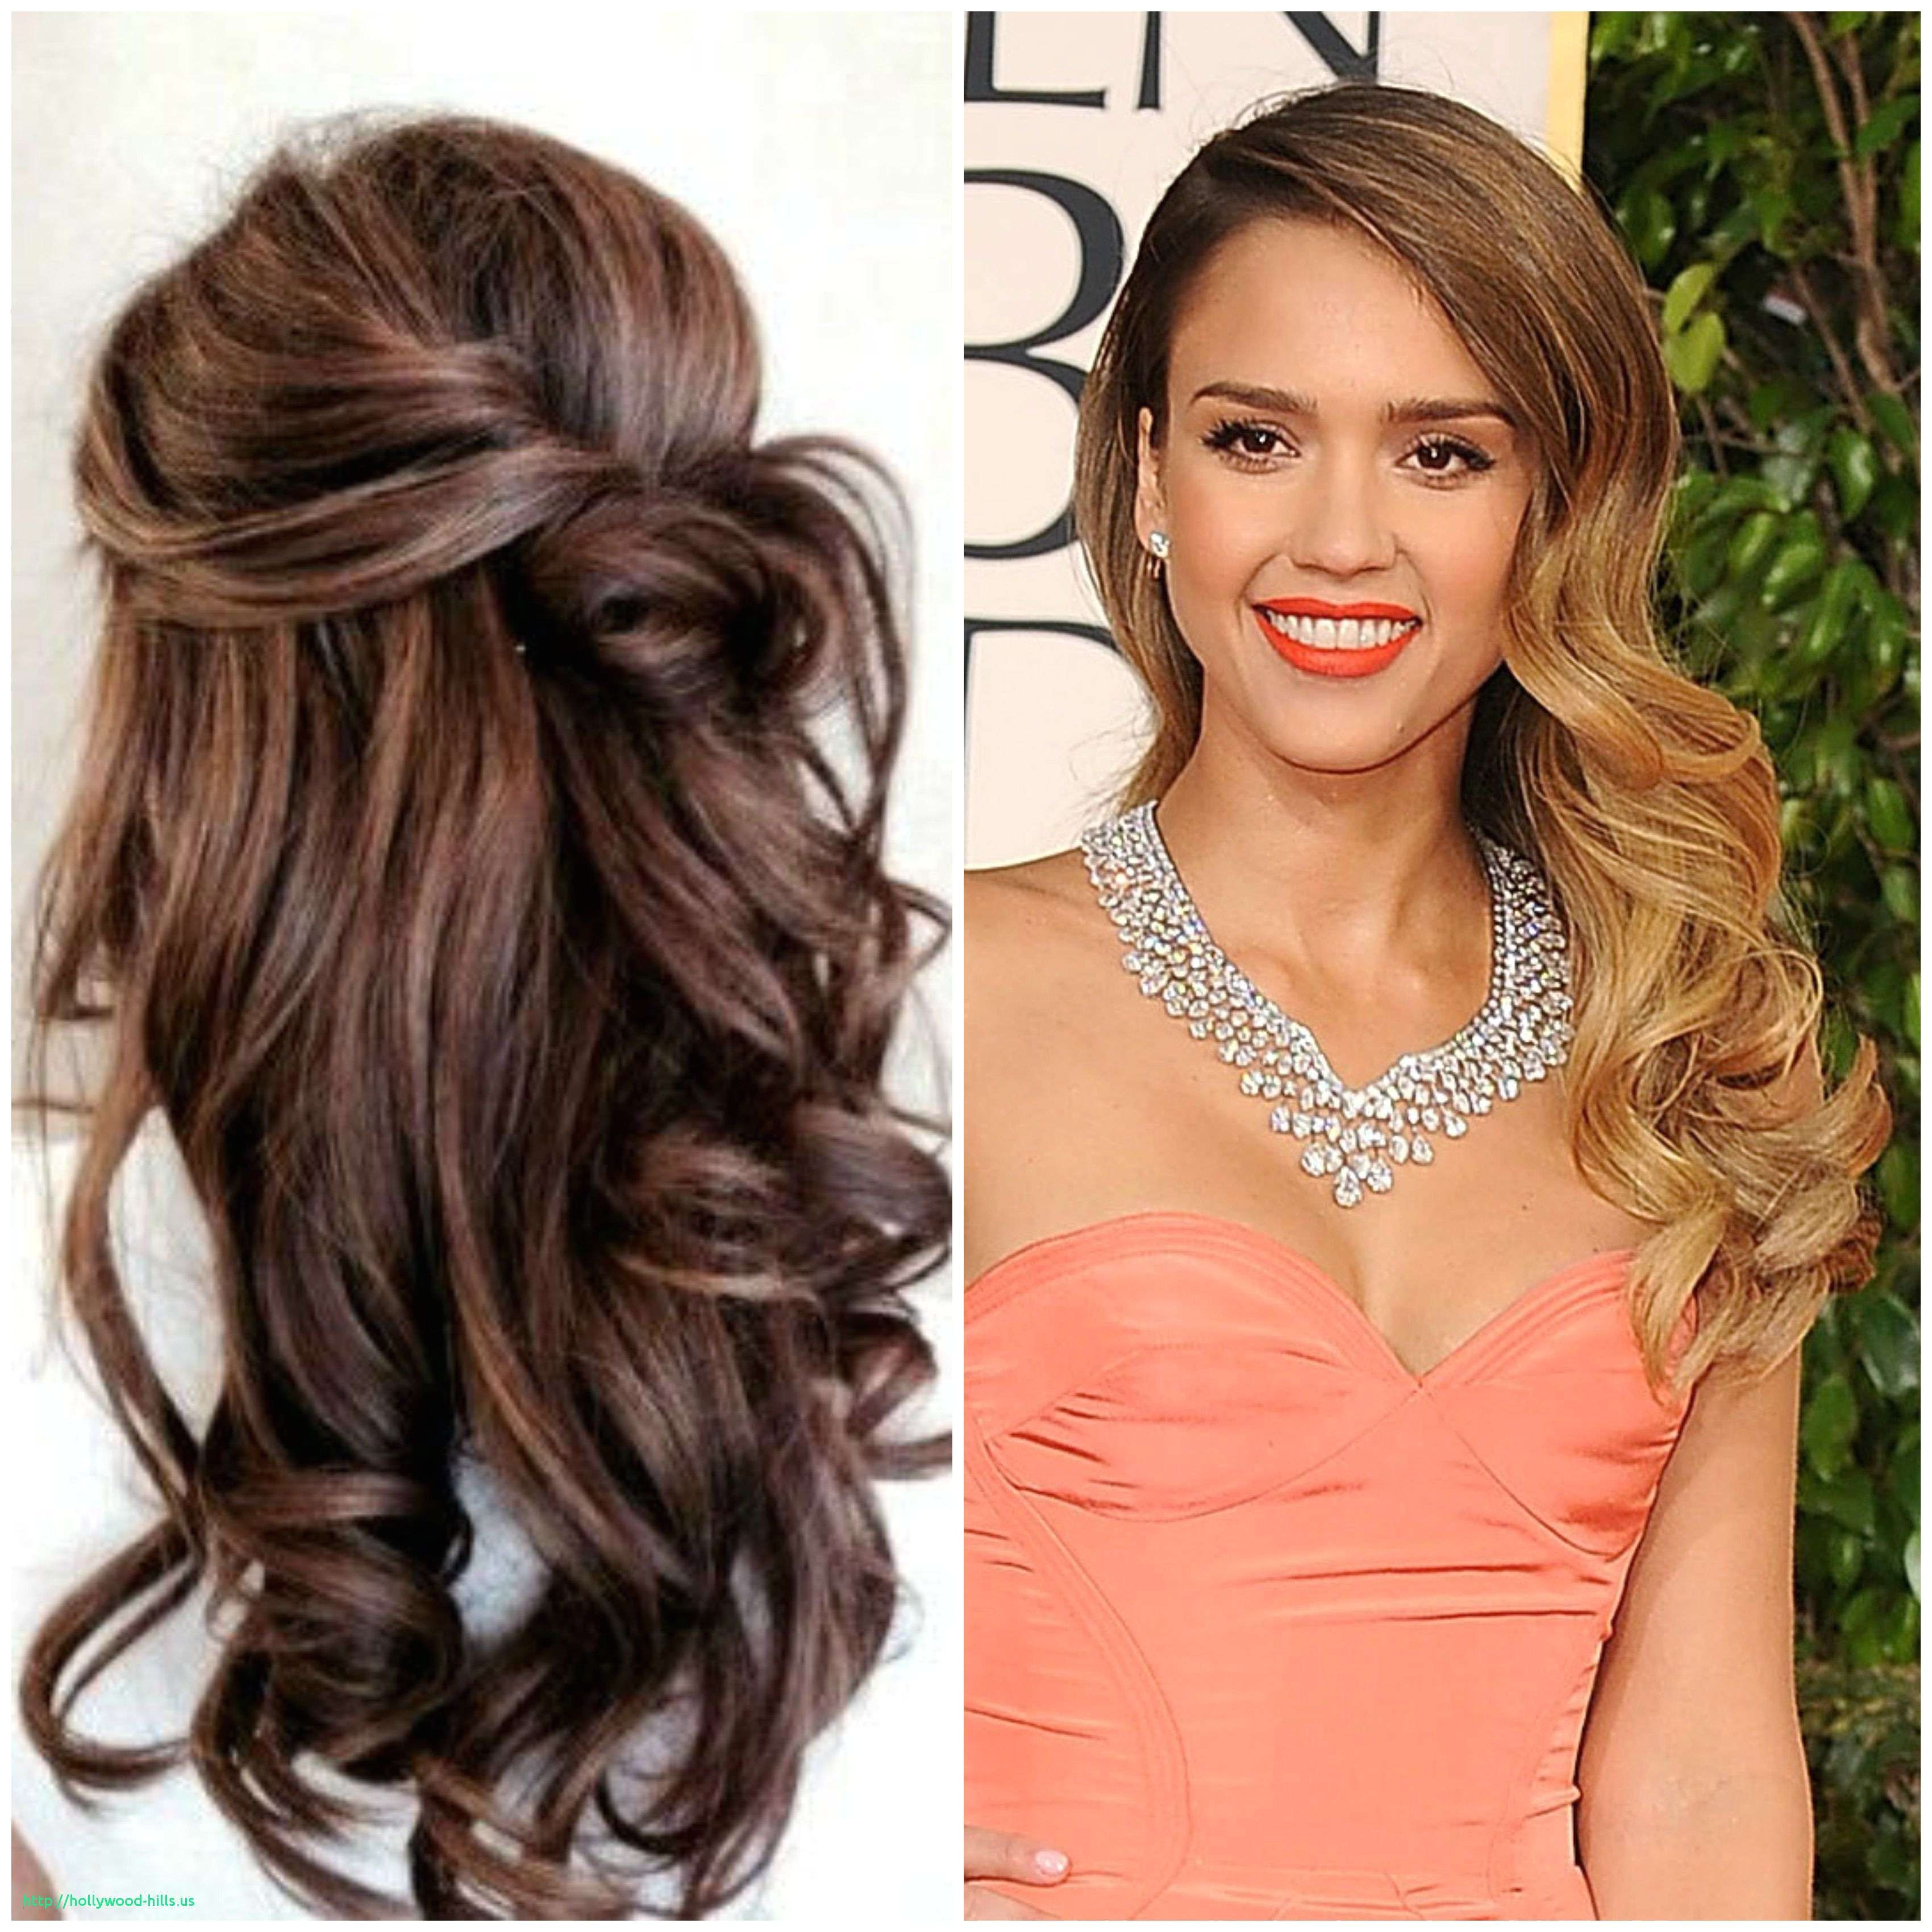 10 Year Old Hairstyles Luxury Hairstyles 2015 Over 50 Years Old 10 Year Old Hairstyles